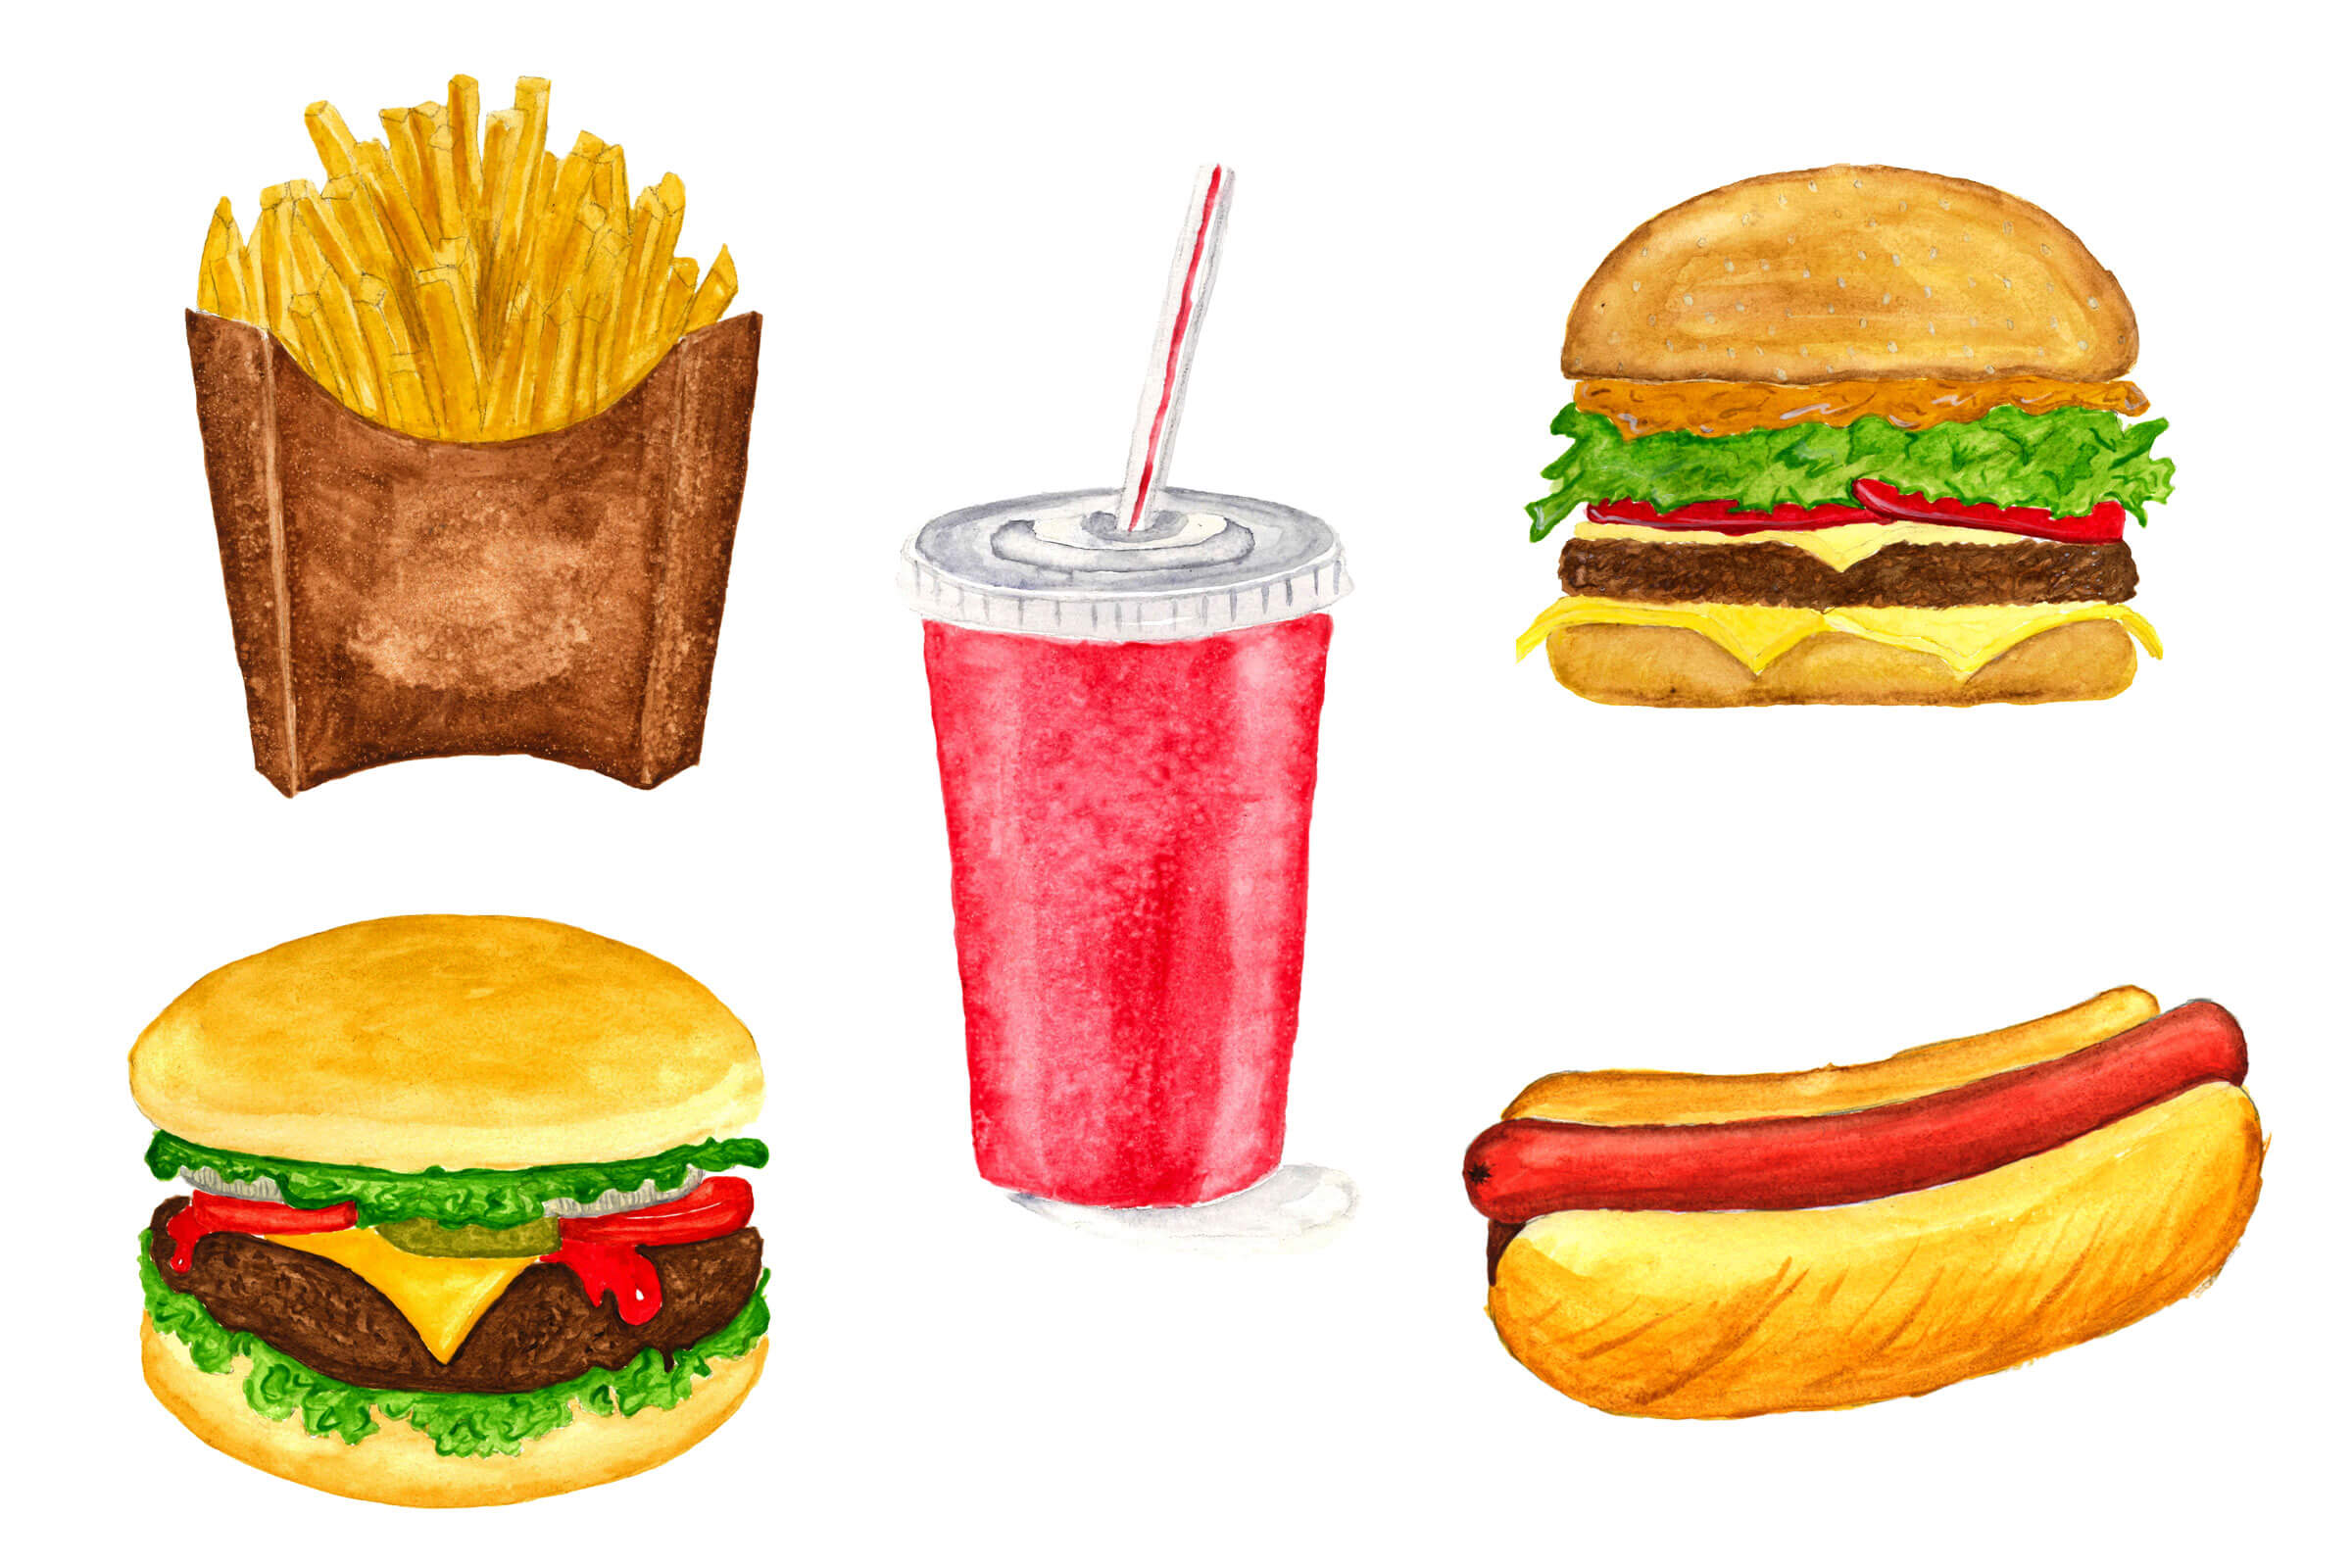 WATERCOLOR_JUNKFOOD